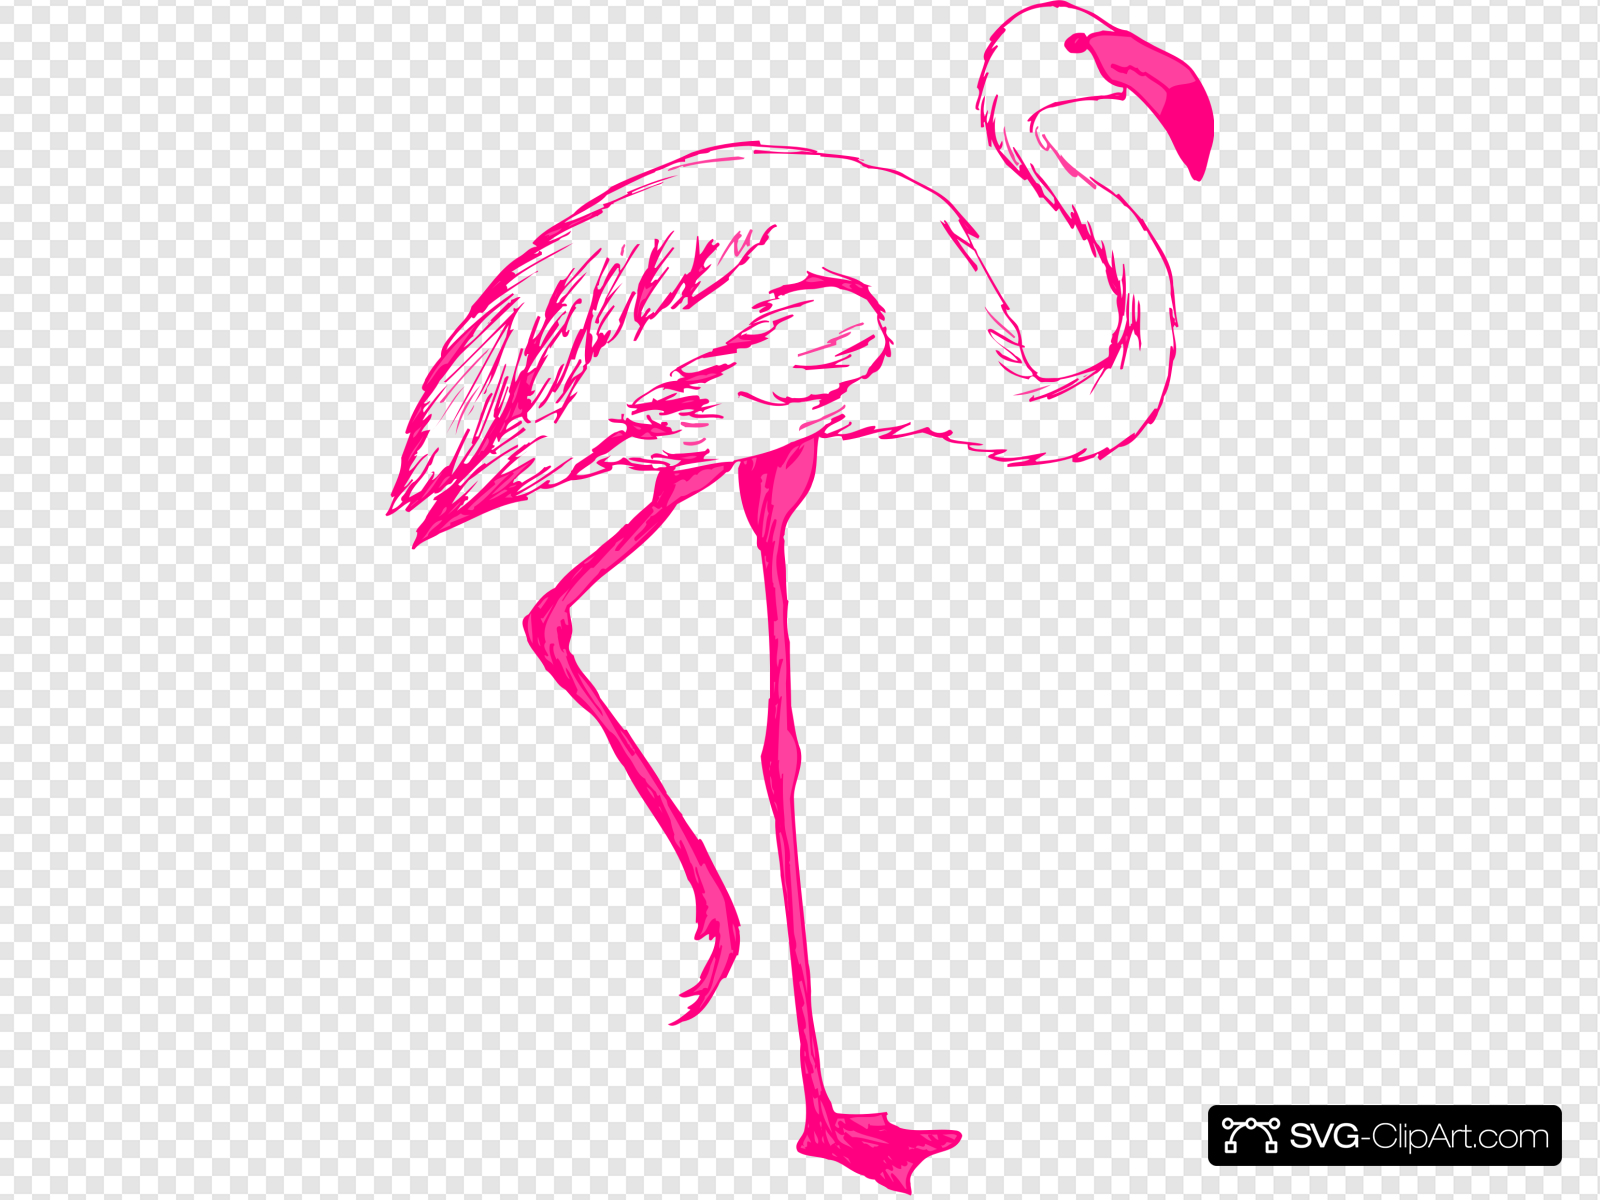 Pink Flamingo Outline Clip art, Icon and SVG.